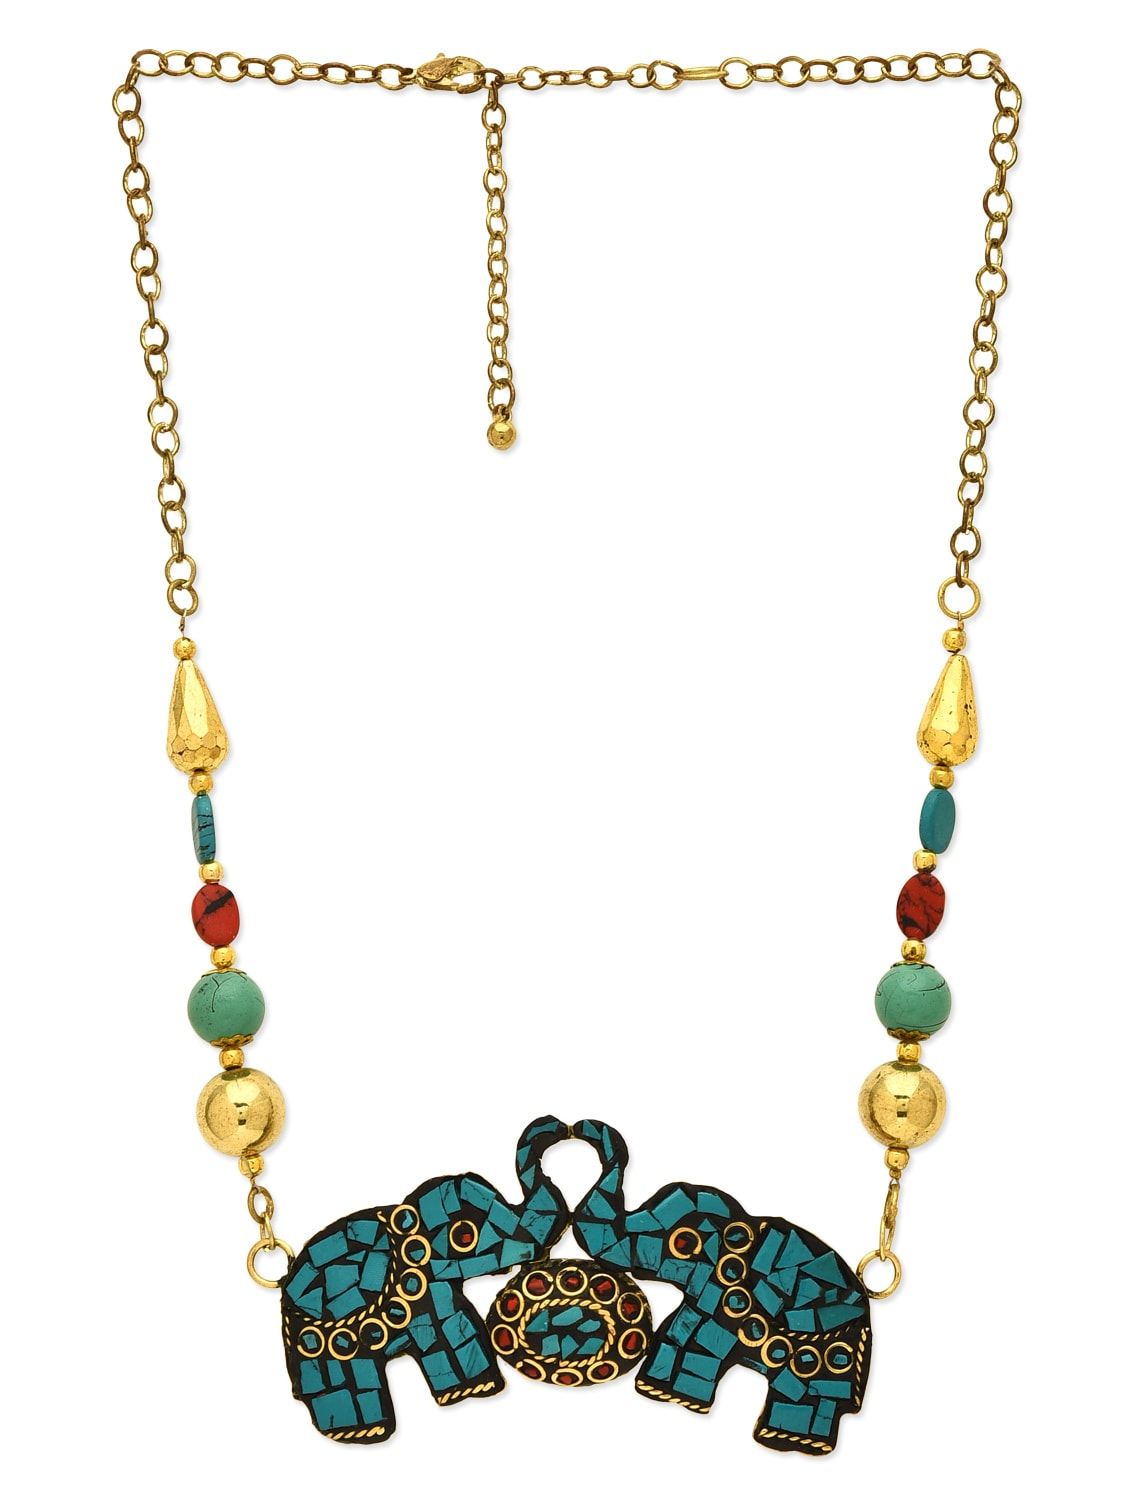 Turquoise, Gold Beads, Brass, Stones, Marble, Resin Long  Necklace - By